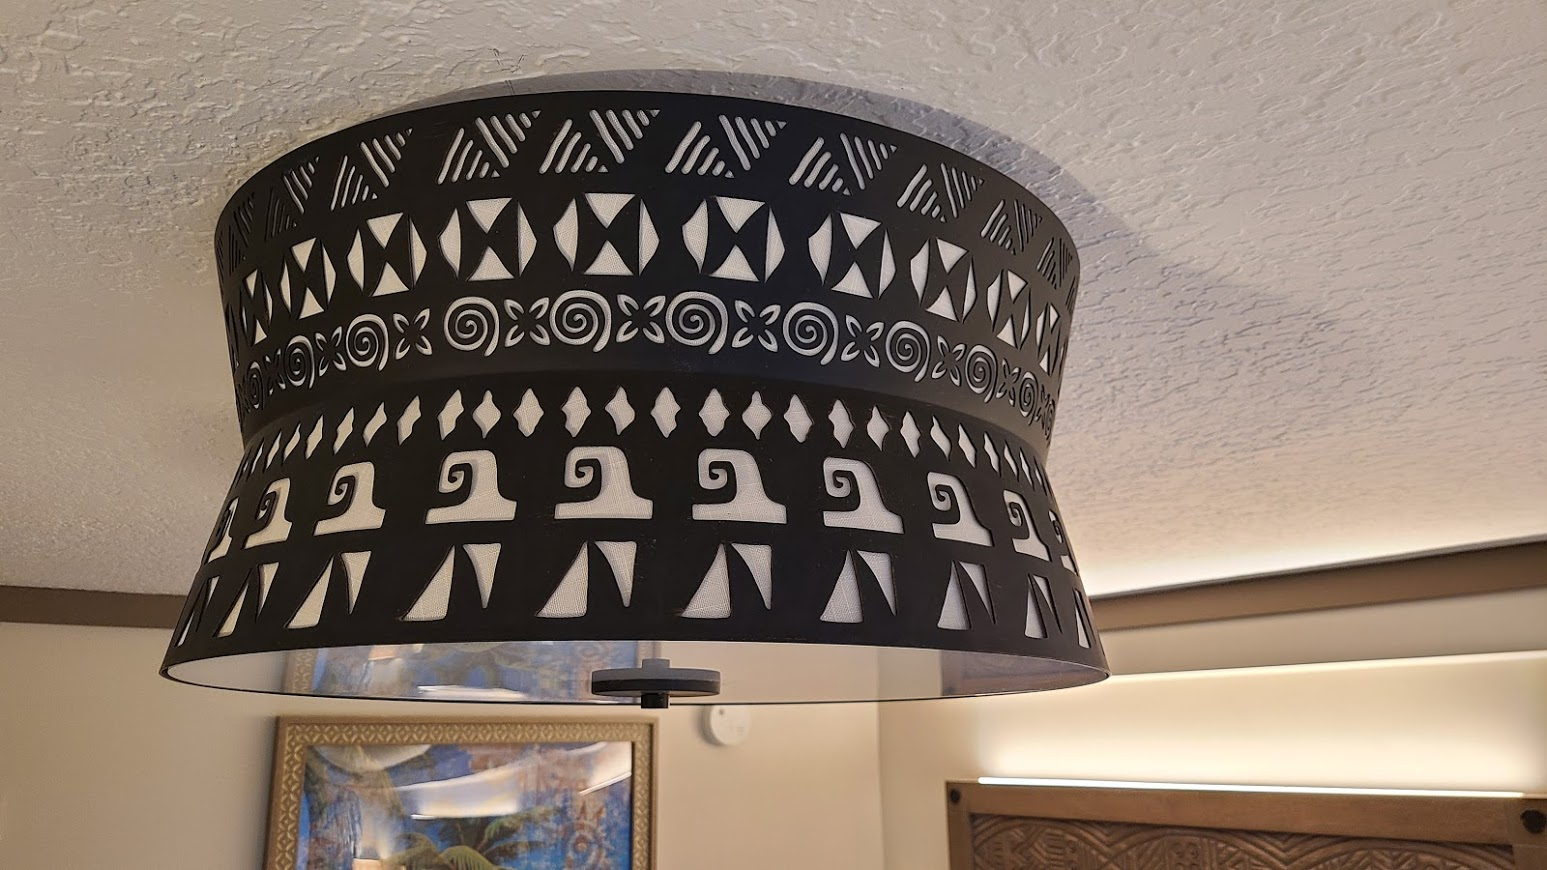 Take a tour of the new Moana Themed Rooms at Disney's Polynesian Resort 13